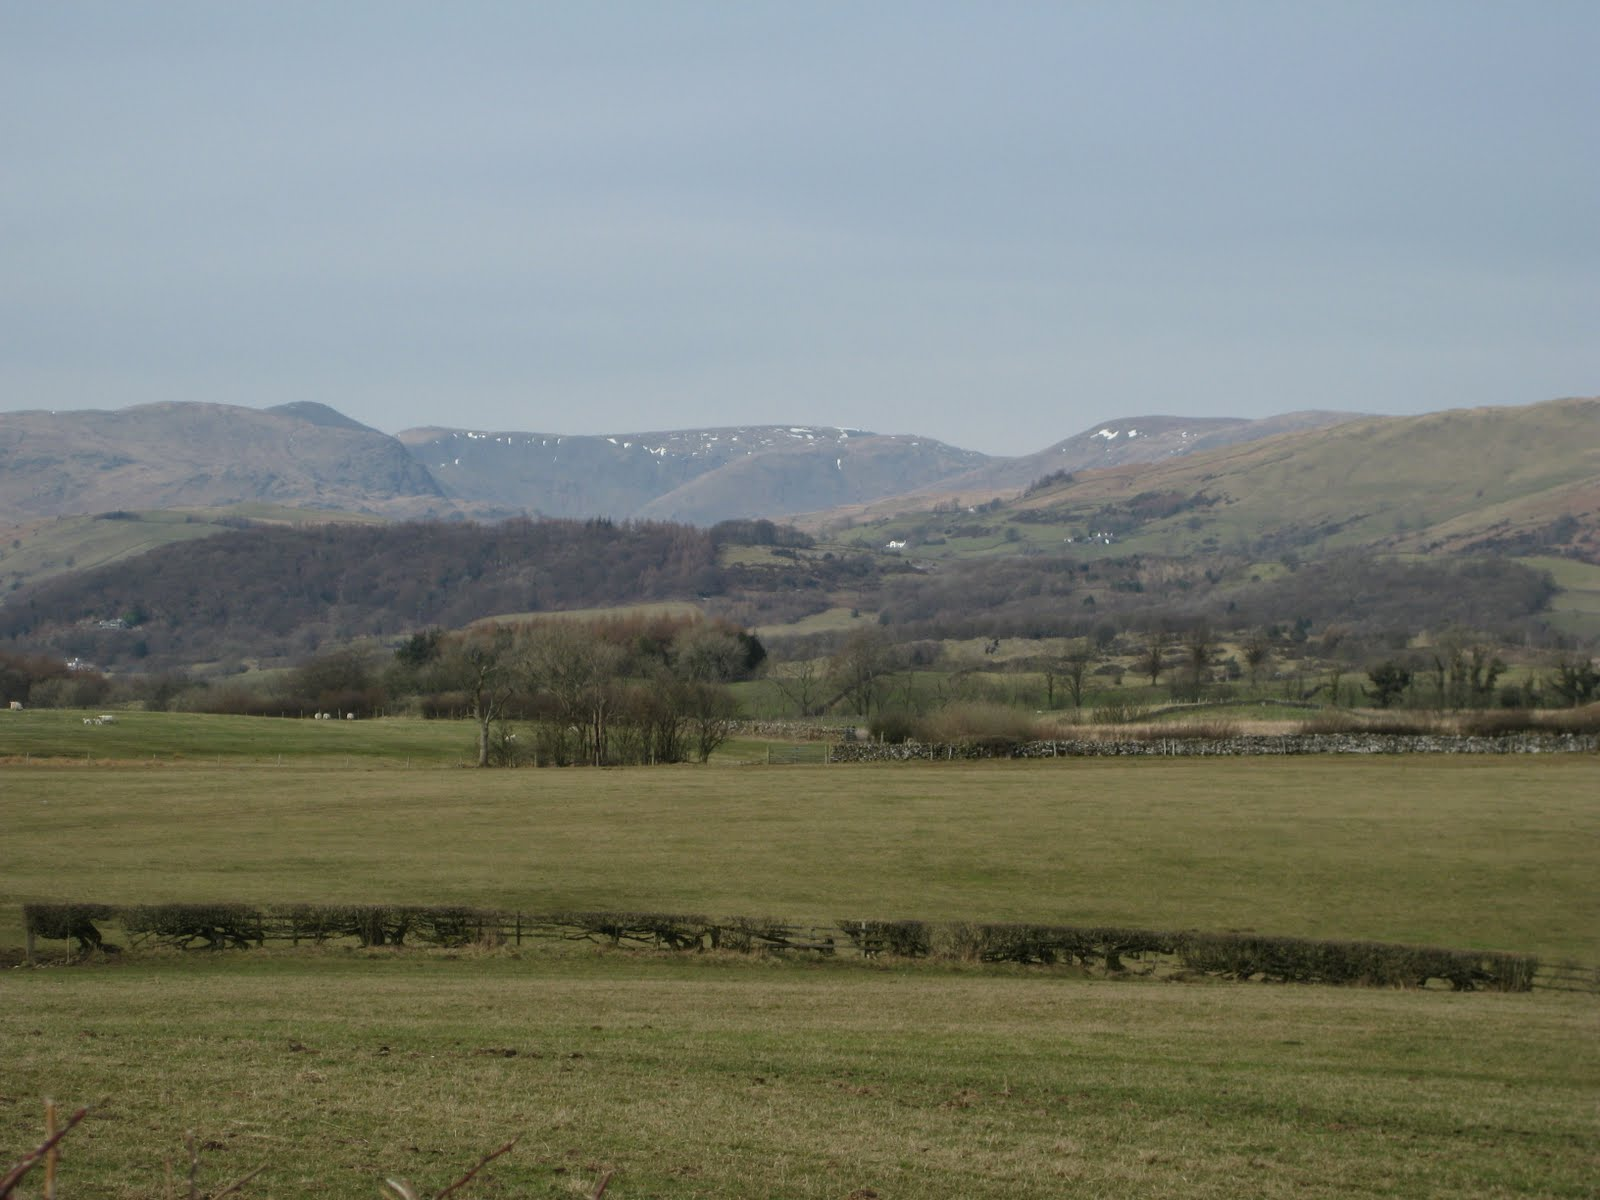 Heading towards the hills - note the snow